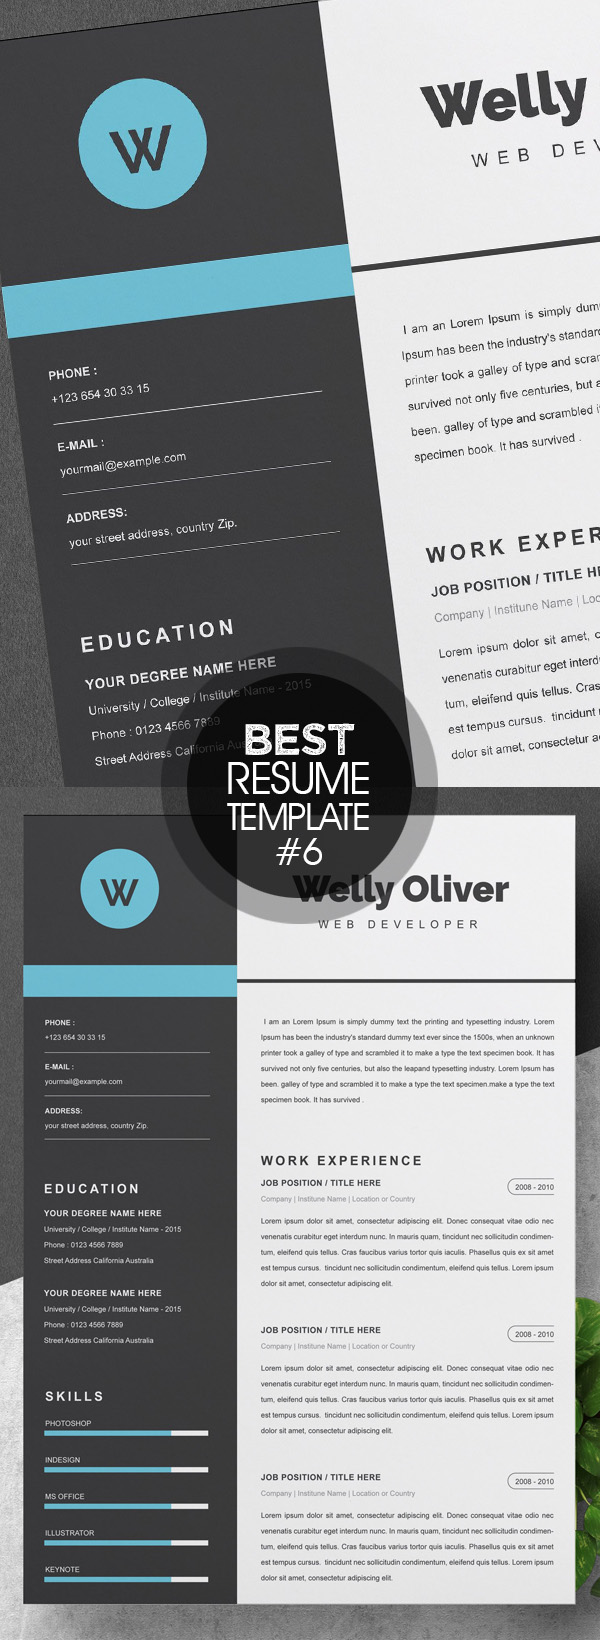 Word CV Template | Resume Template